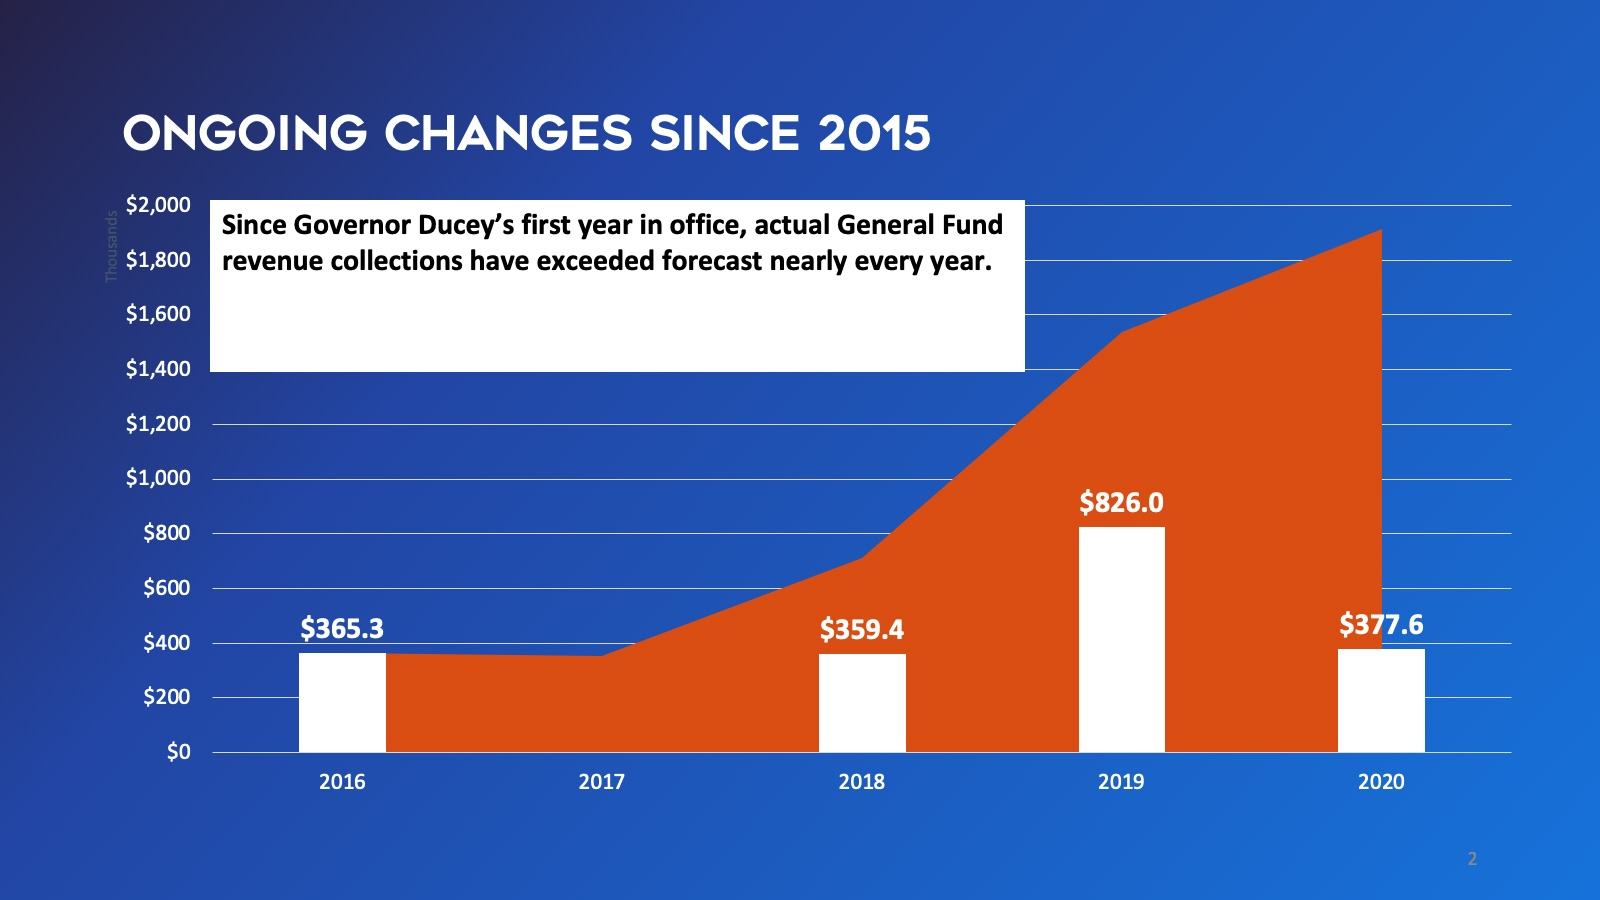 Since Governor Ducey's first year in office, actual General Fund revenue collections have exceeded forecast nearly every year.